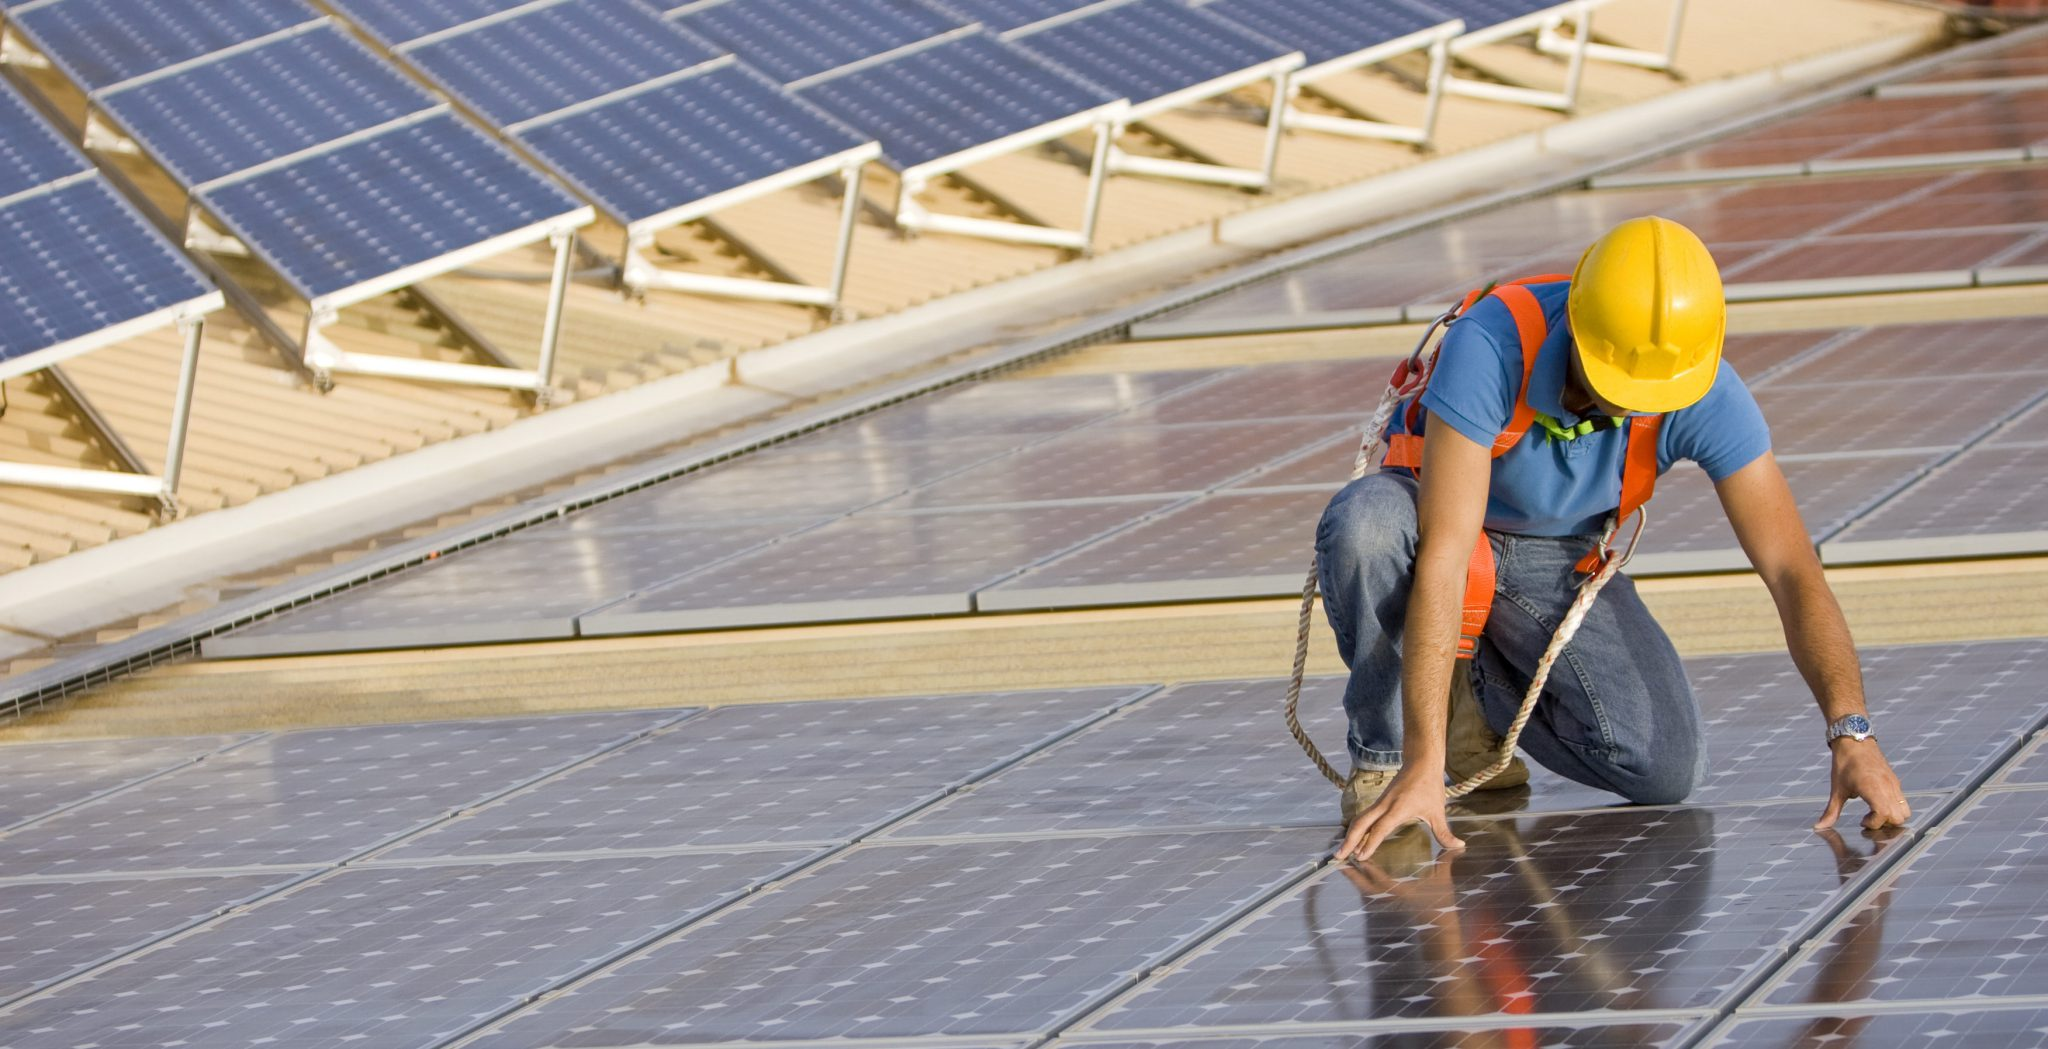 Worker su eolici e energie rinnovabili